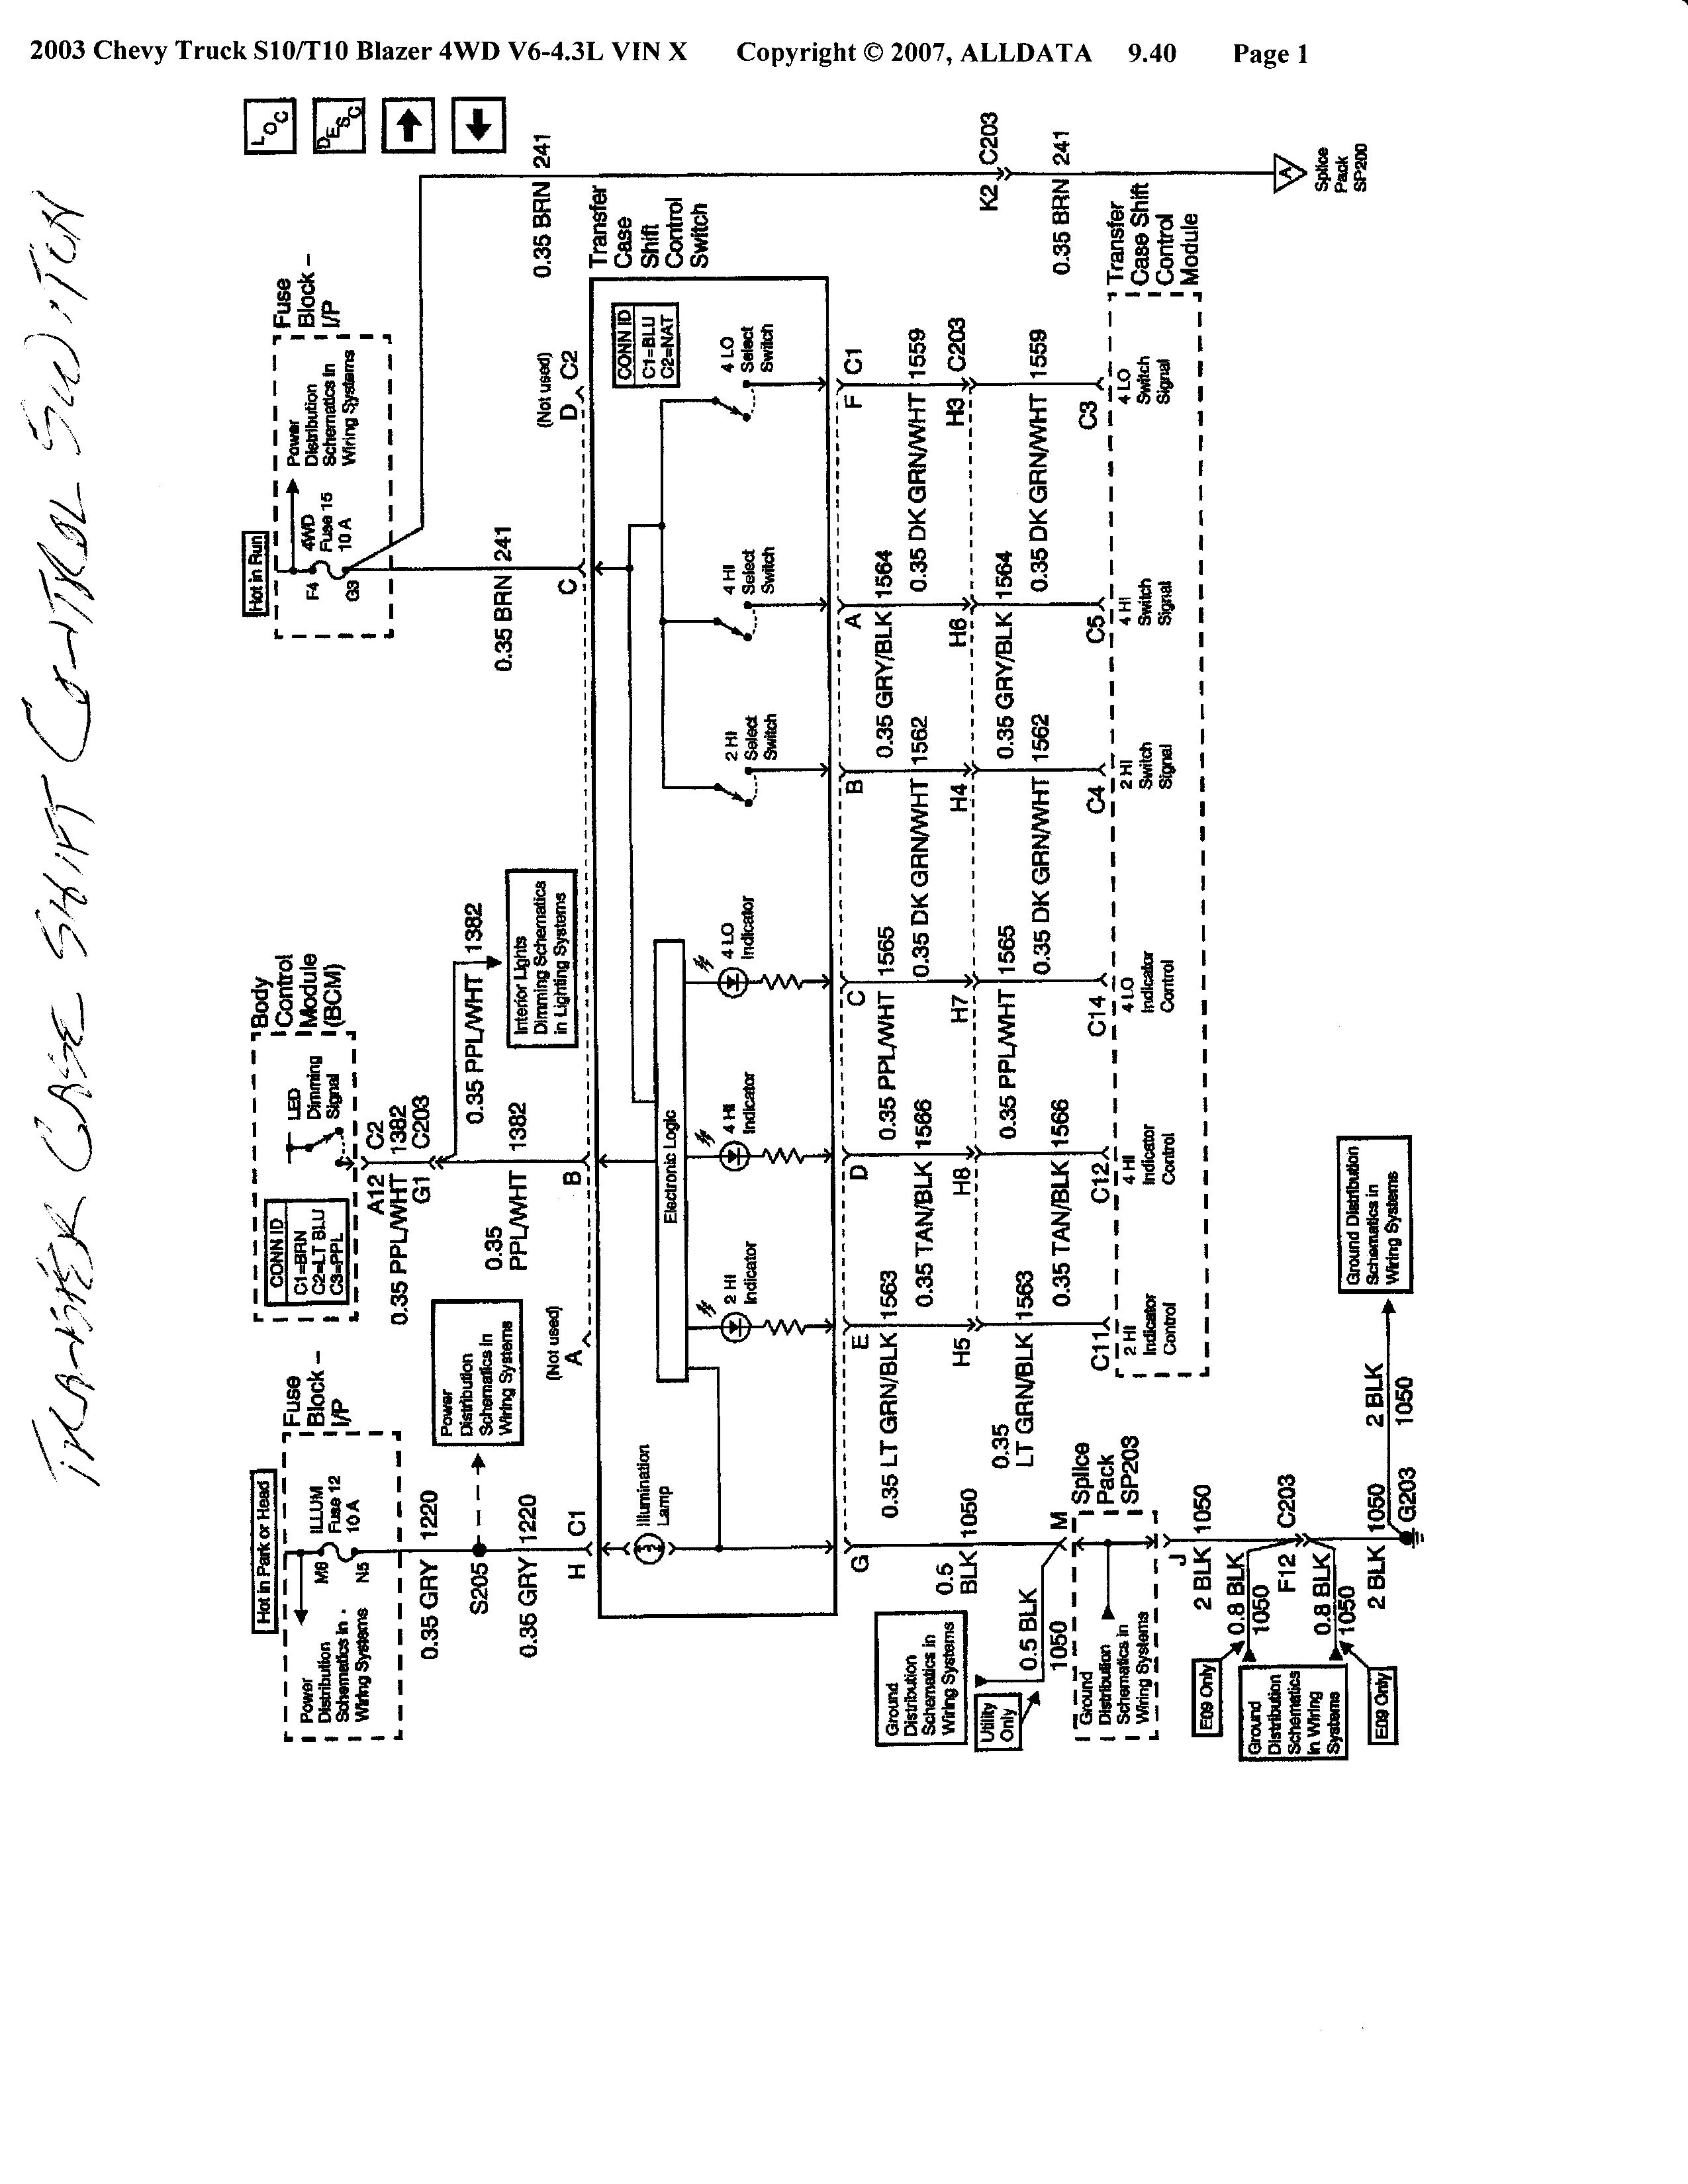 1984 Chevy Silverado Wiring Diagram Control K5 Blazer 2001 S10 4x4 4wd Unit Not Working Tech Support Forum 84 C10 Ignition Headlight